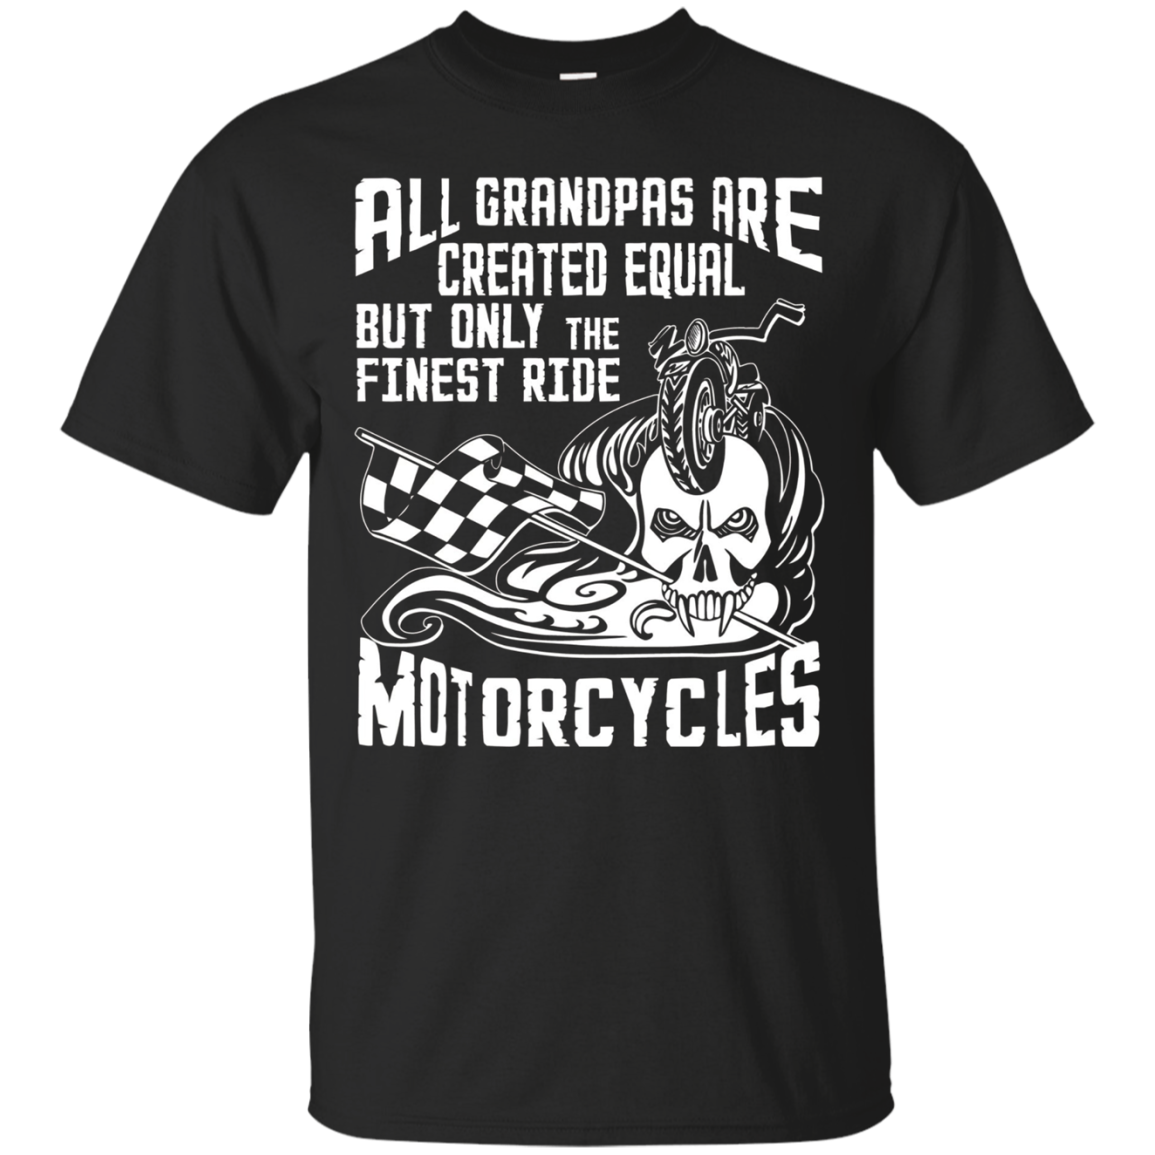 But Only The Finest Grandmas Ride Motorcycles T Shirt